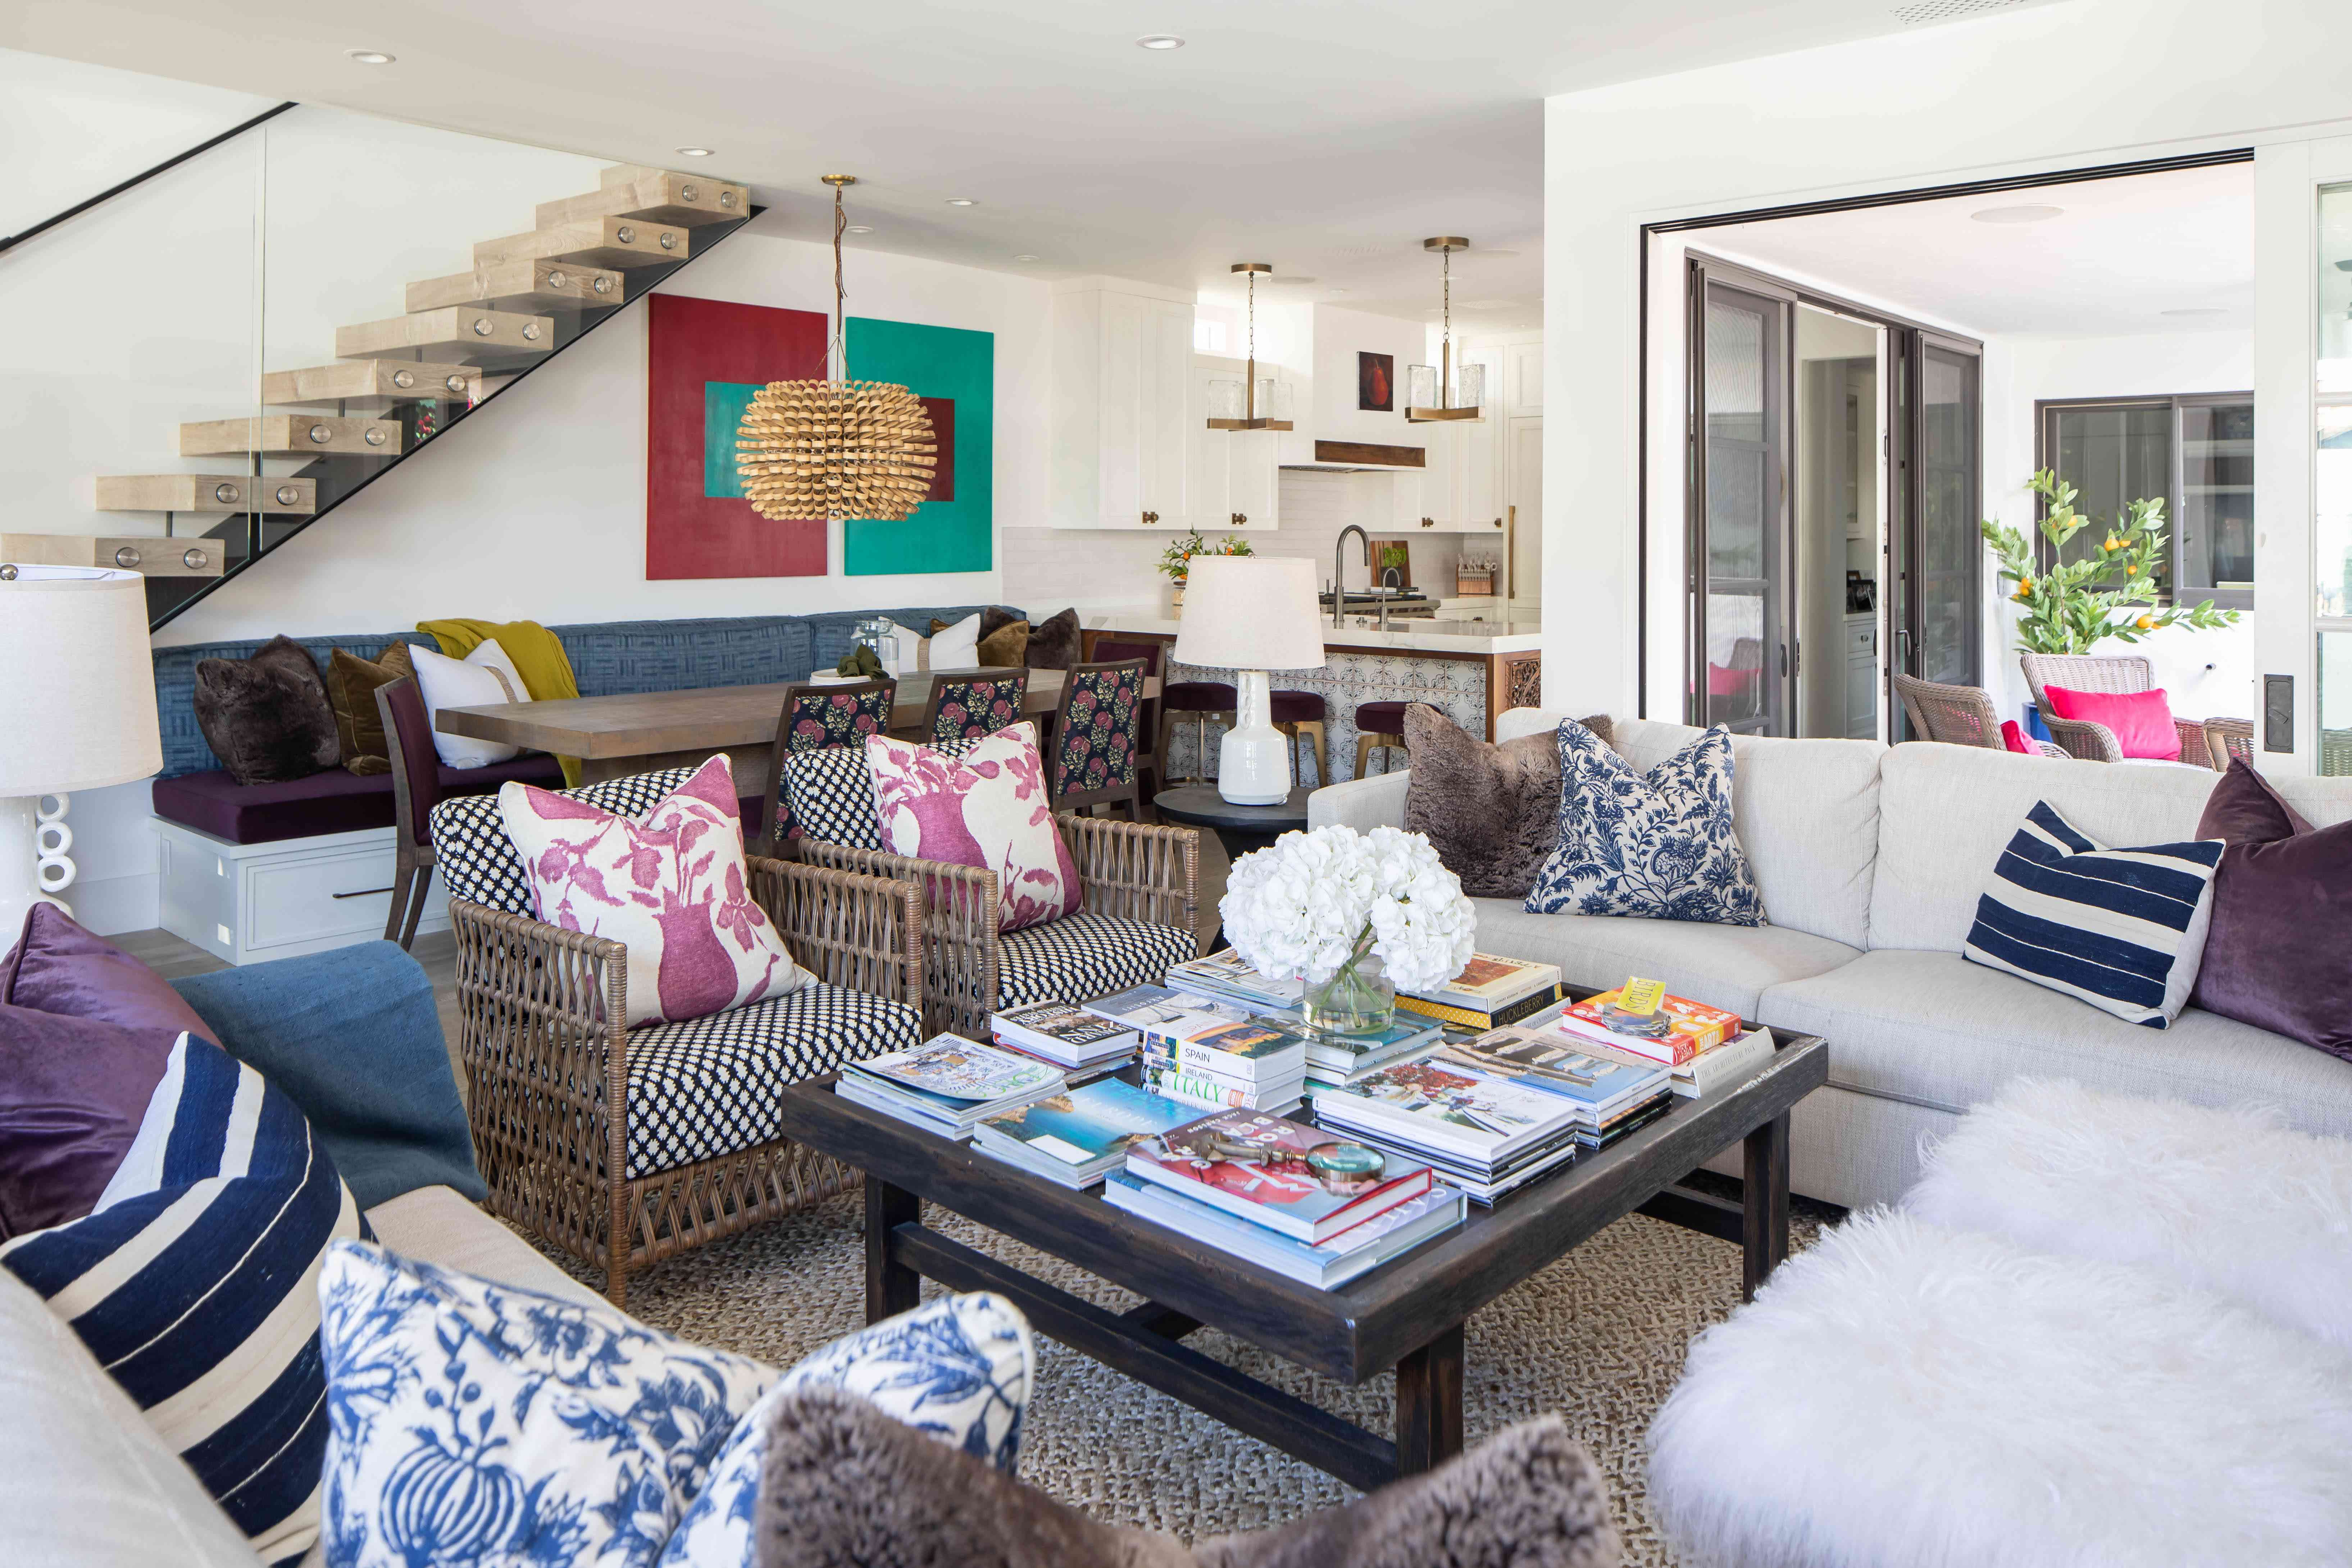 Eclectic living room with coffee table filled with books.